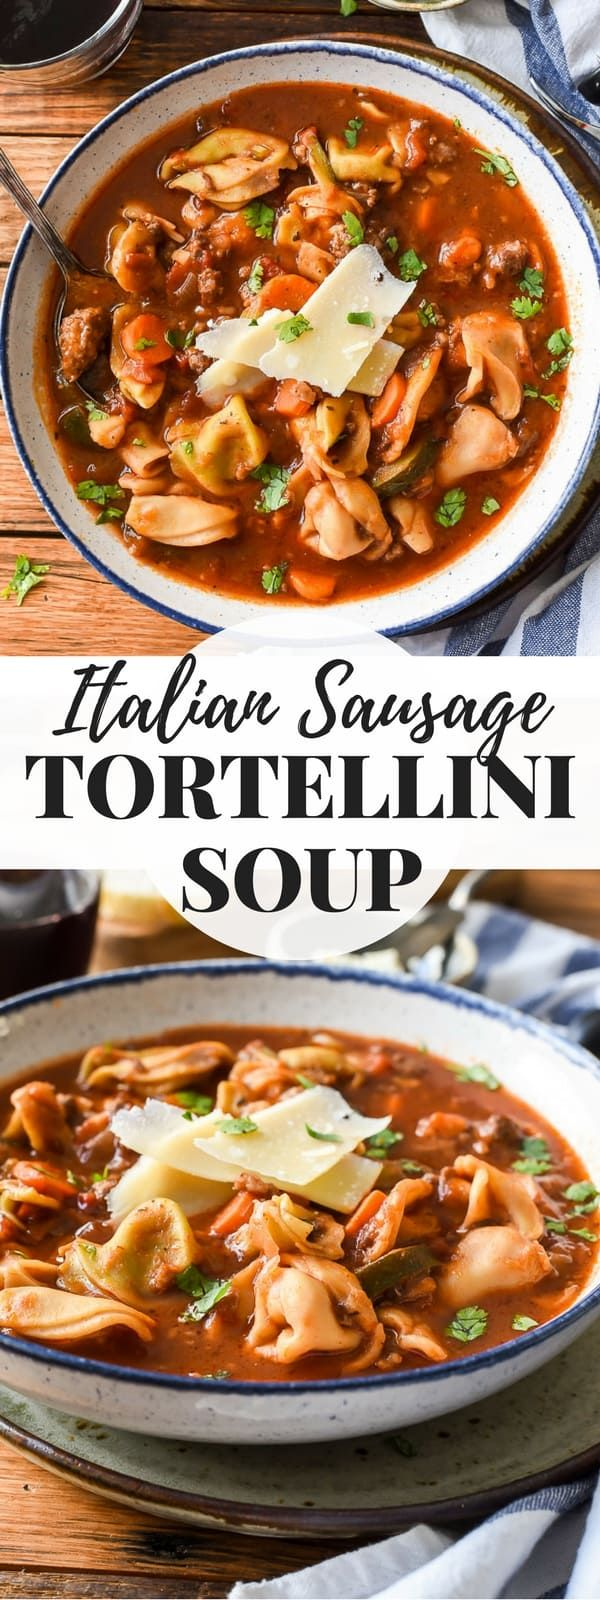 This Italian Sausage Tortellini Soup is a super hearty and satisfying soup that's perfect for company! Grab a crusty loaf of bread for dunking, and you've got a great winter dinner. #soup #tortellinisoup #sausagesoup #winterrecipes